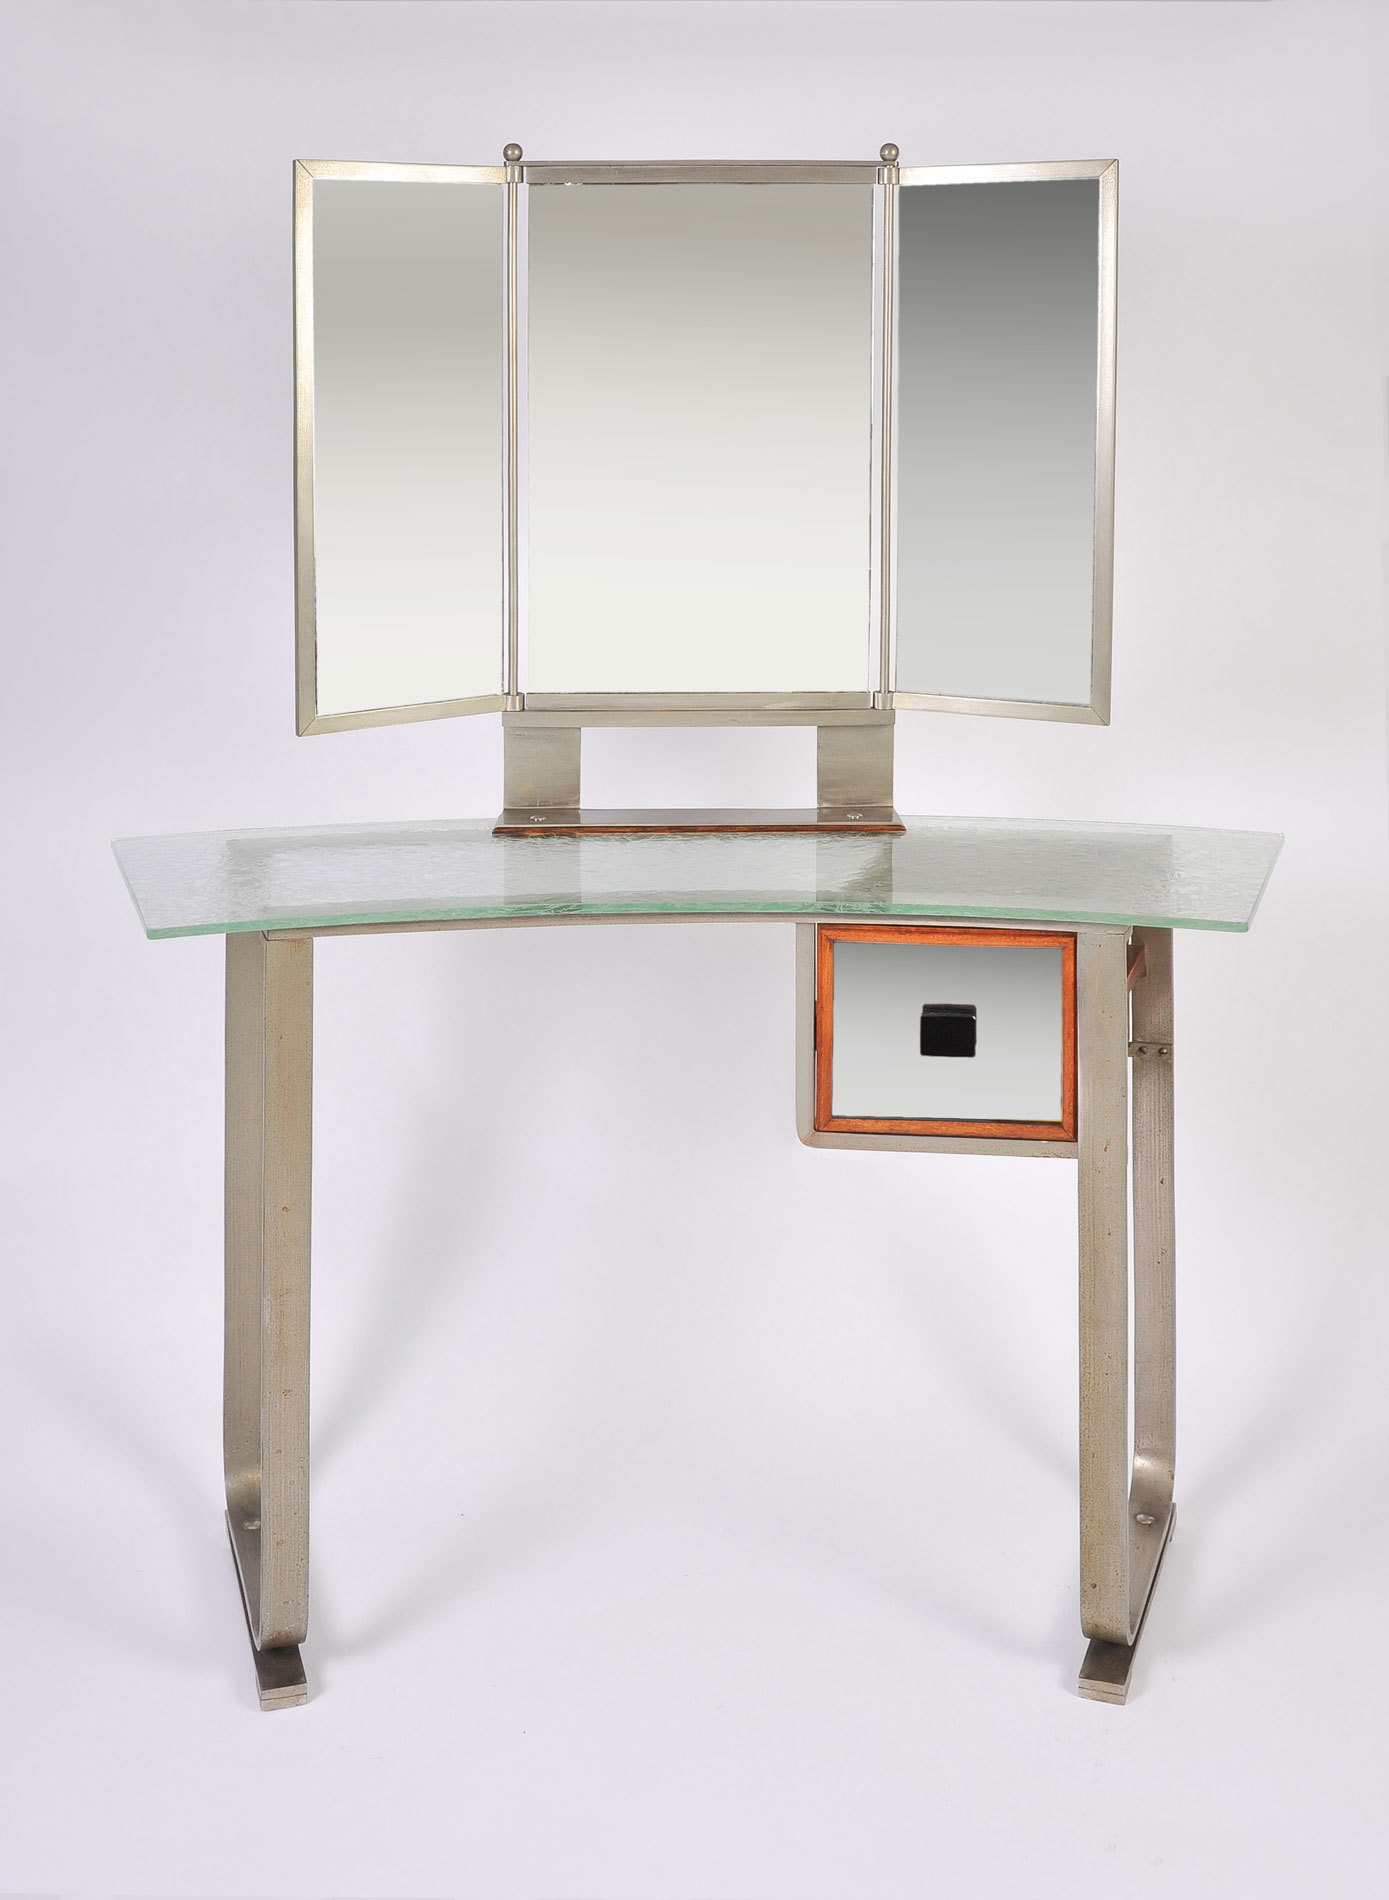 Italian Glass Chrome Dressing Table 02Ajpg